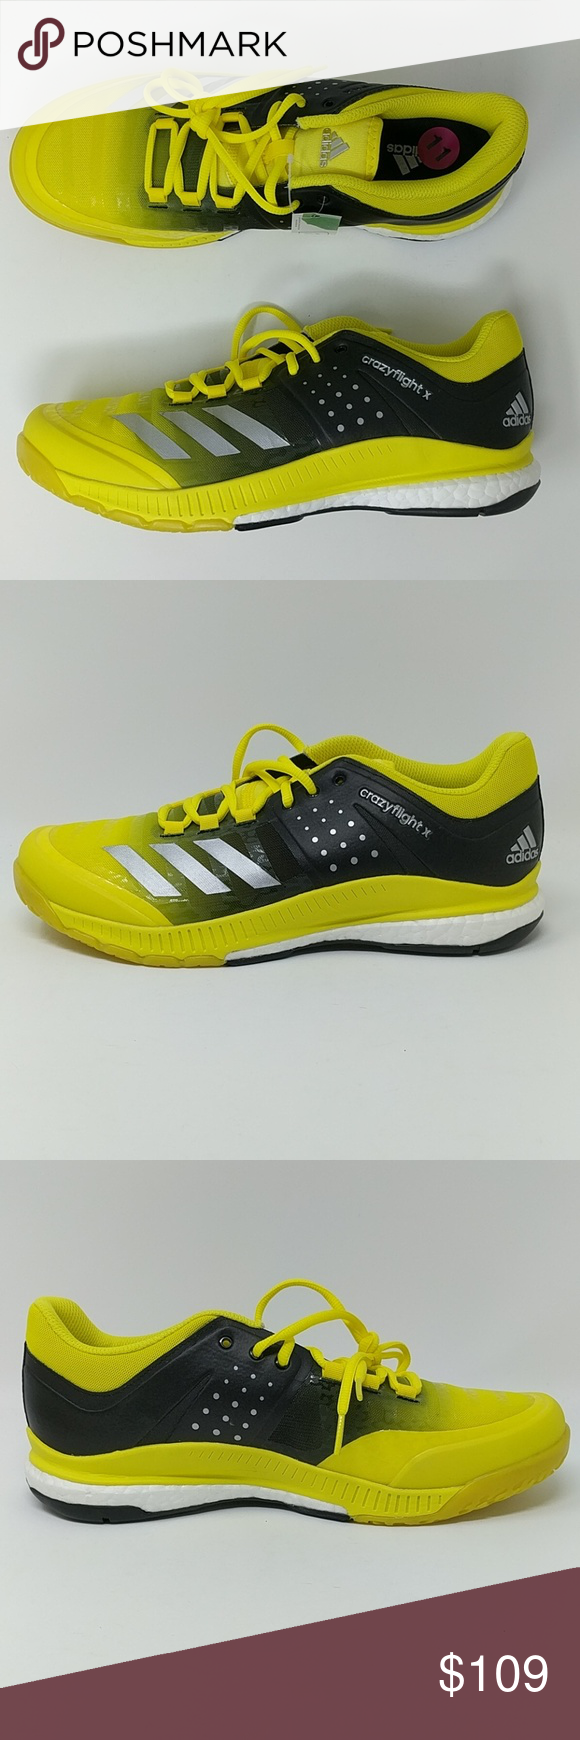 new product af6df 82538 Adidas Womens Crazyflight X Volleyball Shoes NEW New without box. Womens  size 11. Price is firm. BA9267. adidas Shoes Athletic Shoes